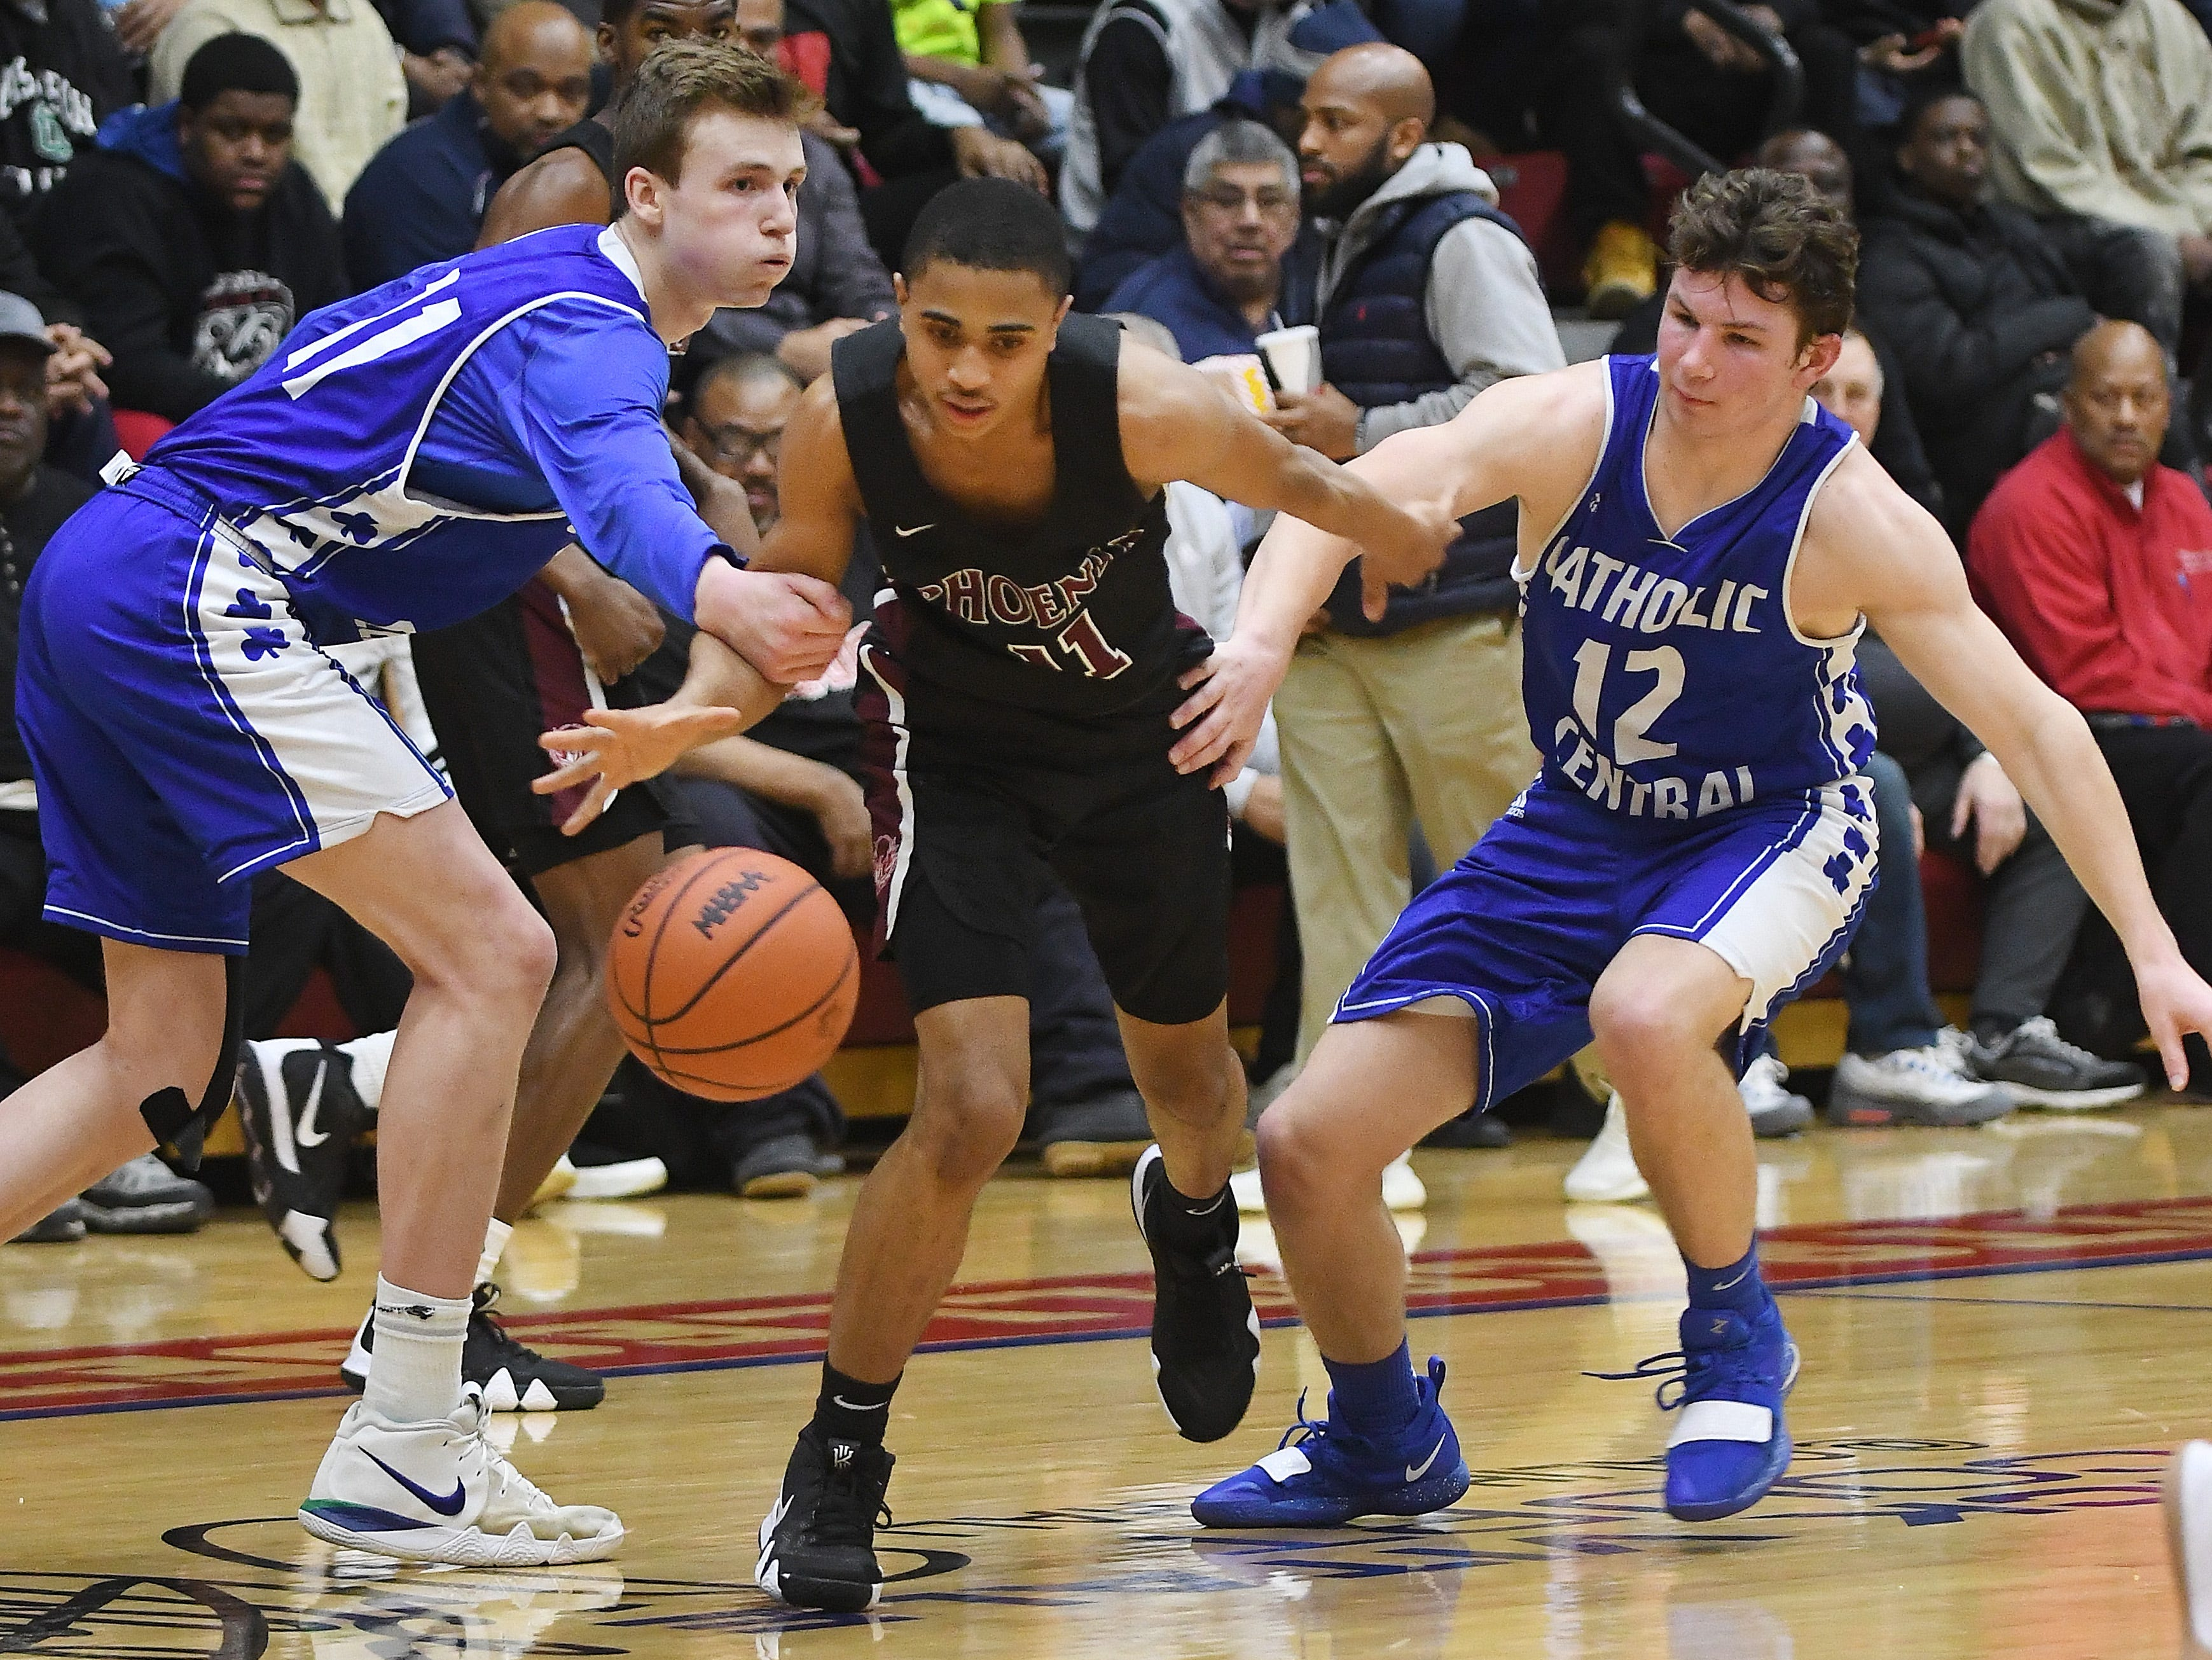 Renaissance's Juwan Maxey is fouled by Catholic Central's Justin Rukat late in the game with teammate Keegan Koehler defending in the second half of the consolation game.